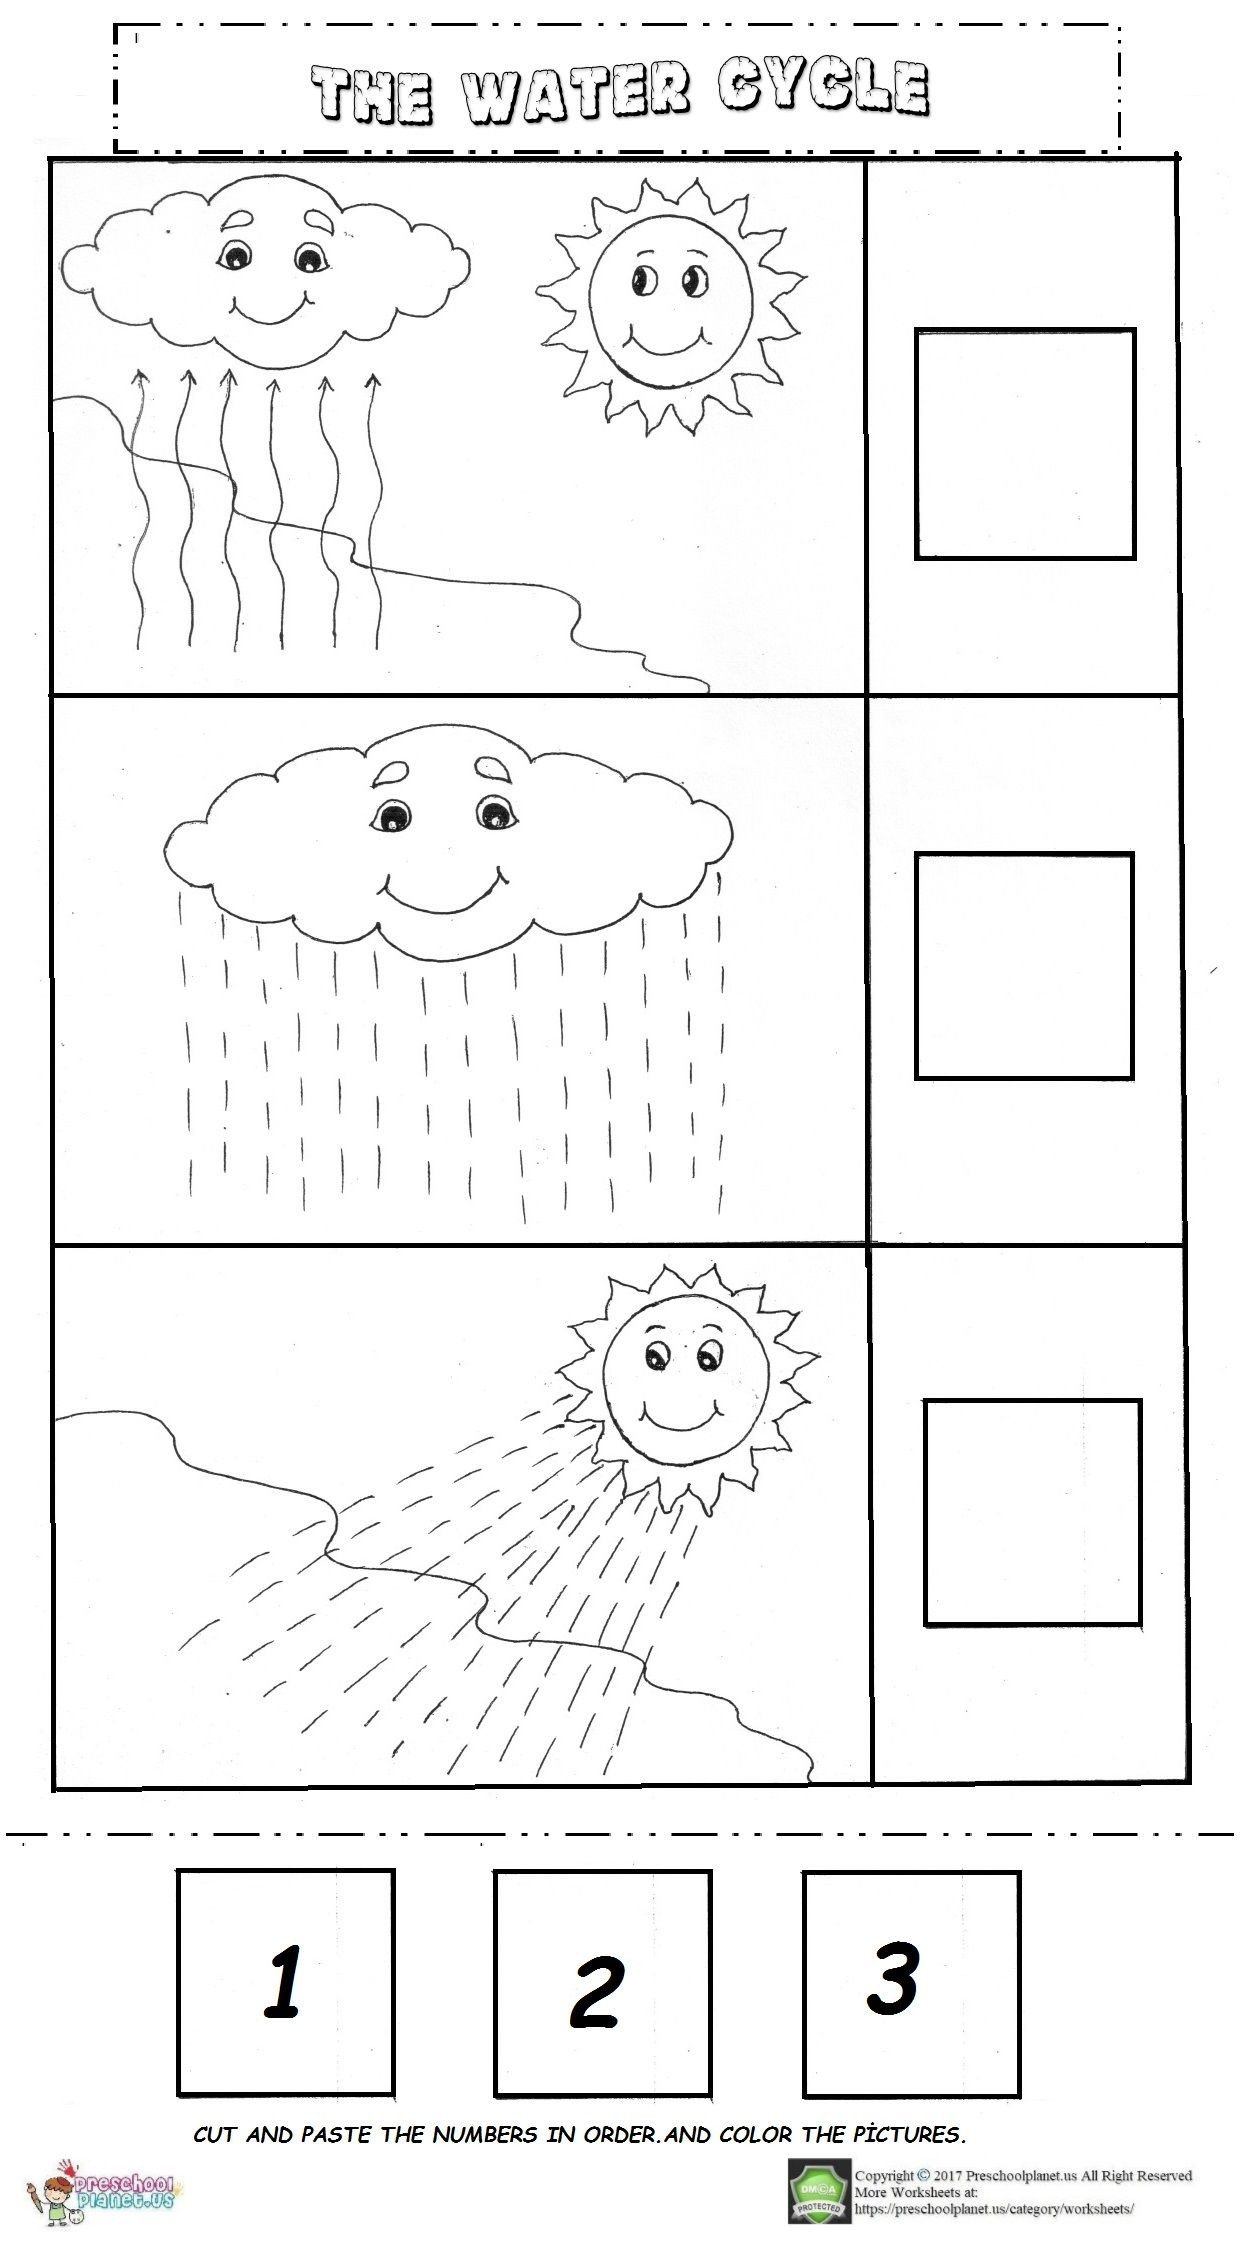 Water Cycle Kindergarten Worksheet the Water Cycle Worksheet